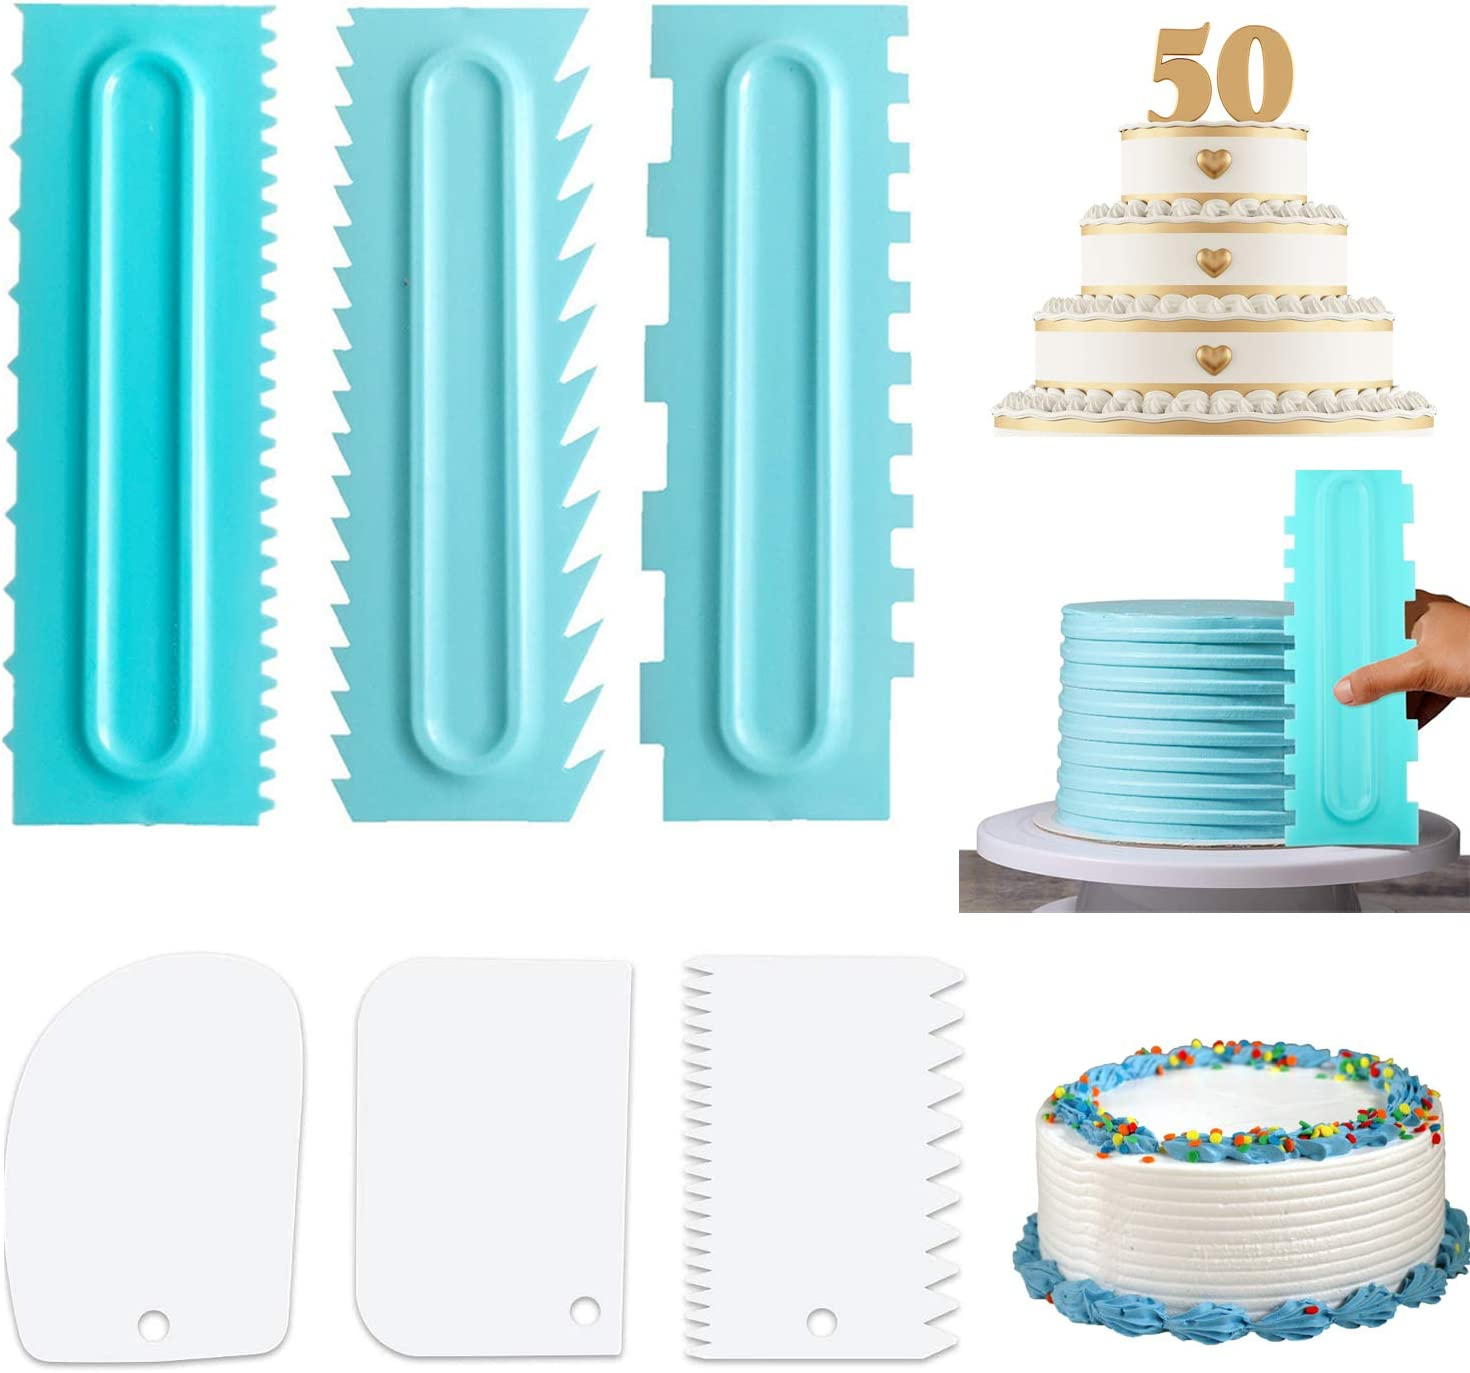 4 Pack Cake Scraper Set Decorating Comb and Icing Smoother Tool Mousse Butter Cream Cake Edge DIY Tool Plastic Sawtooth Cake Scraper Icing Smoother Comb Set Cake Decorating Comb Kitchen Baking Tools